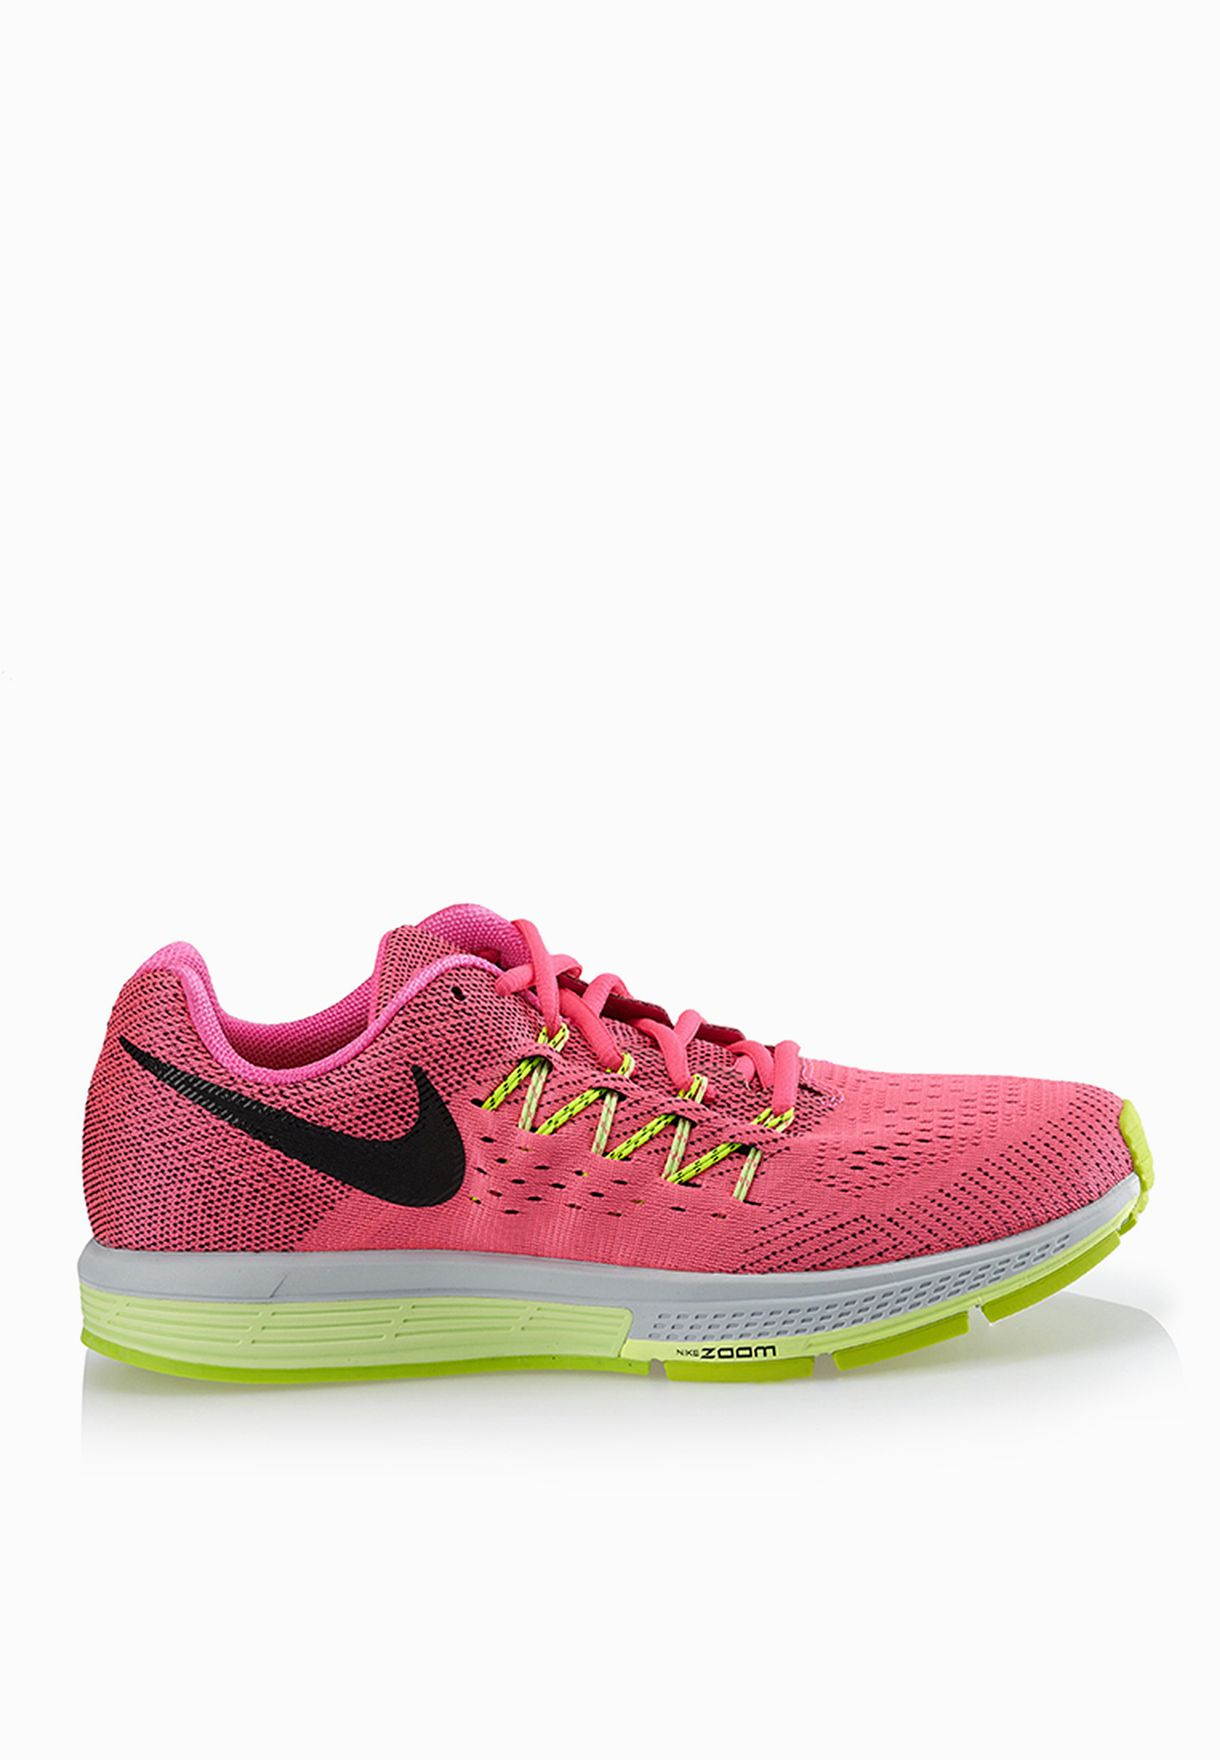 1e9d9dcf40e Shop Nike pink Air Zoom Vomero 10 717441-603 for Women in UAE ...